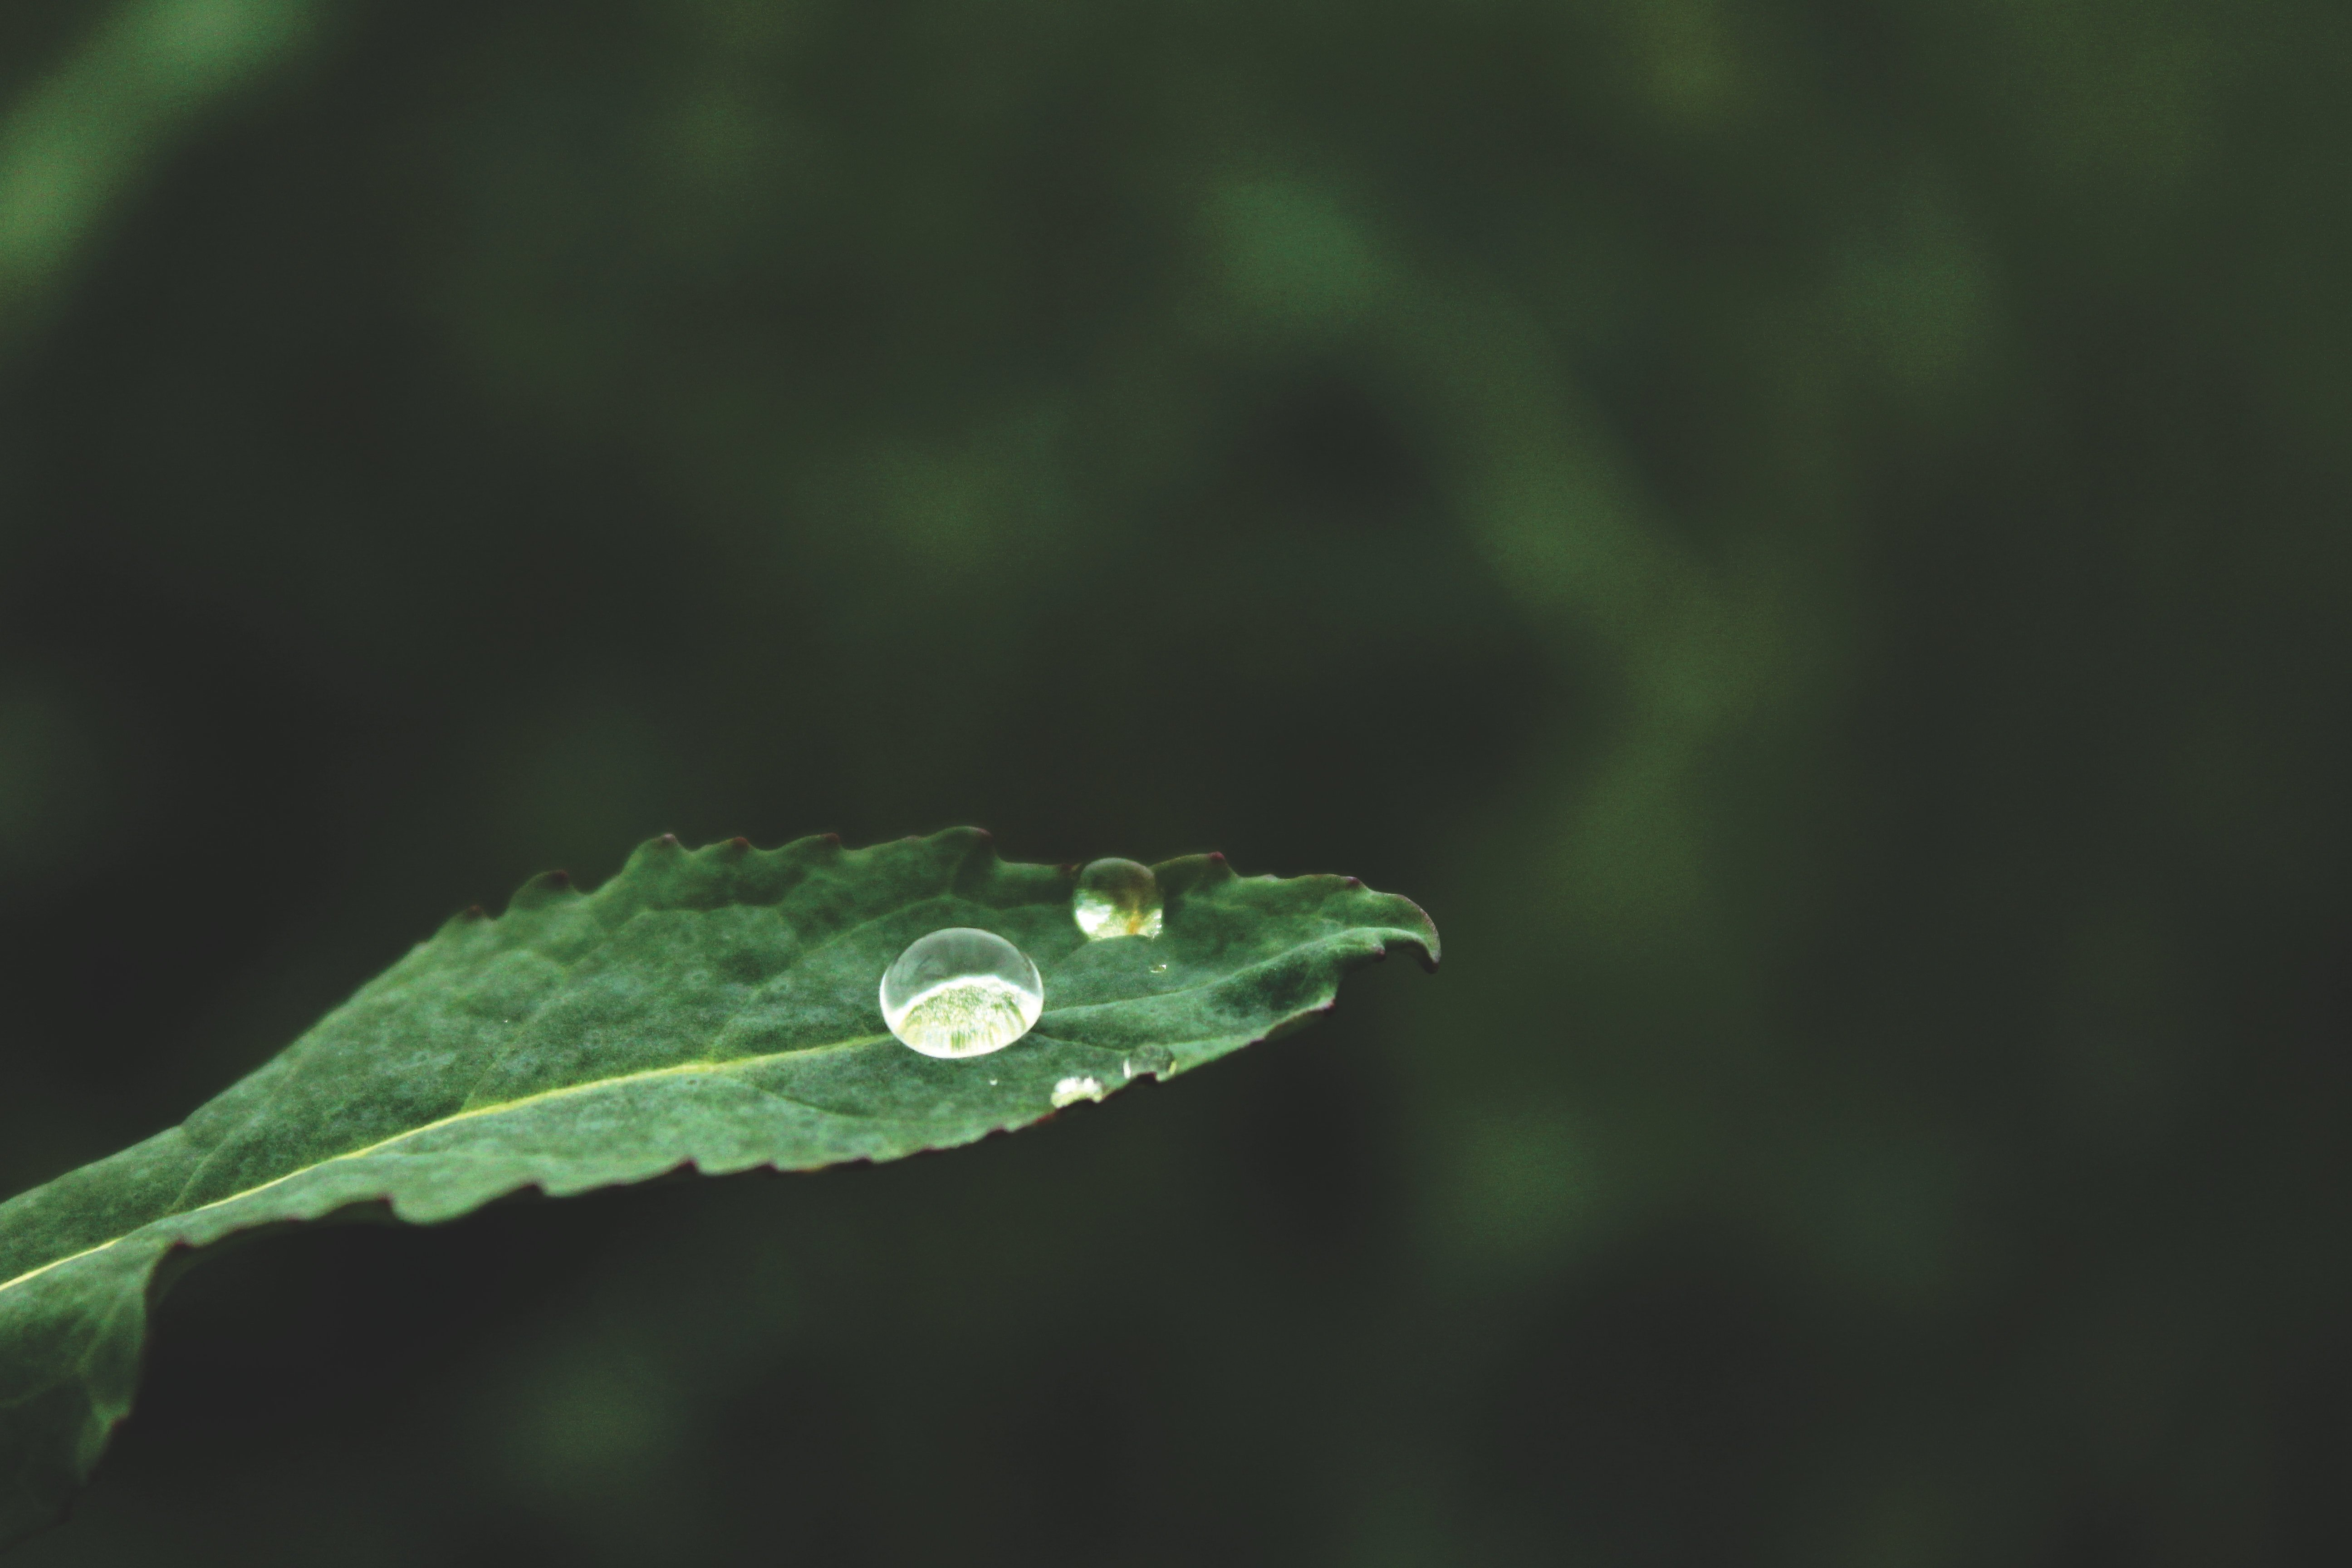 Leaf with drop of water